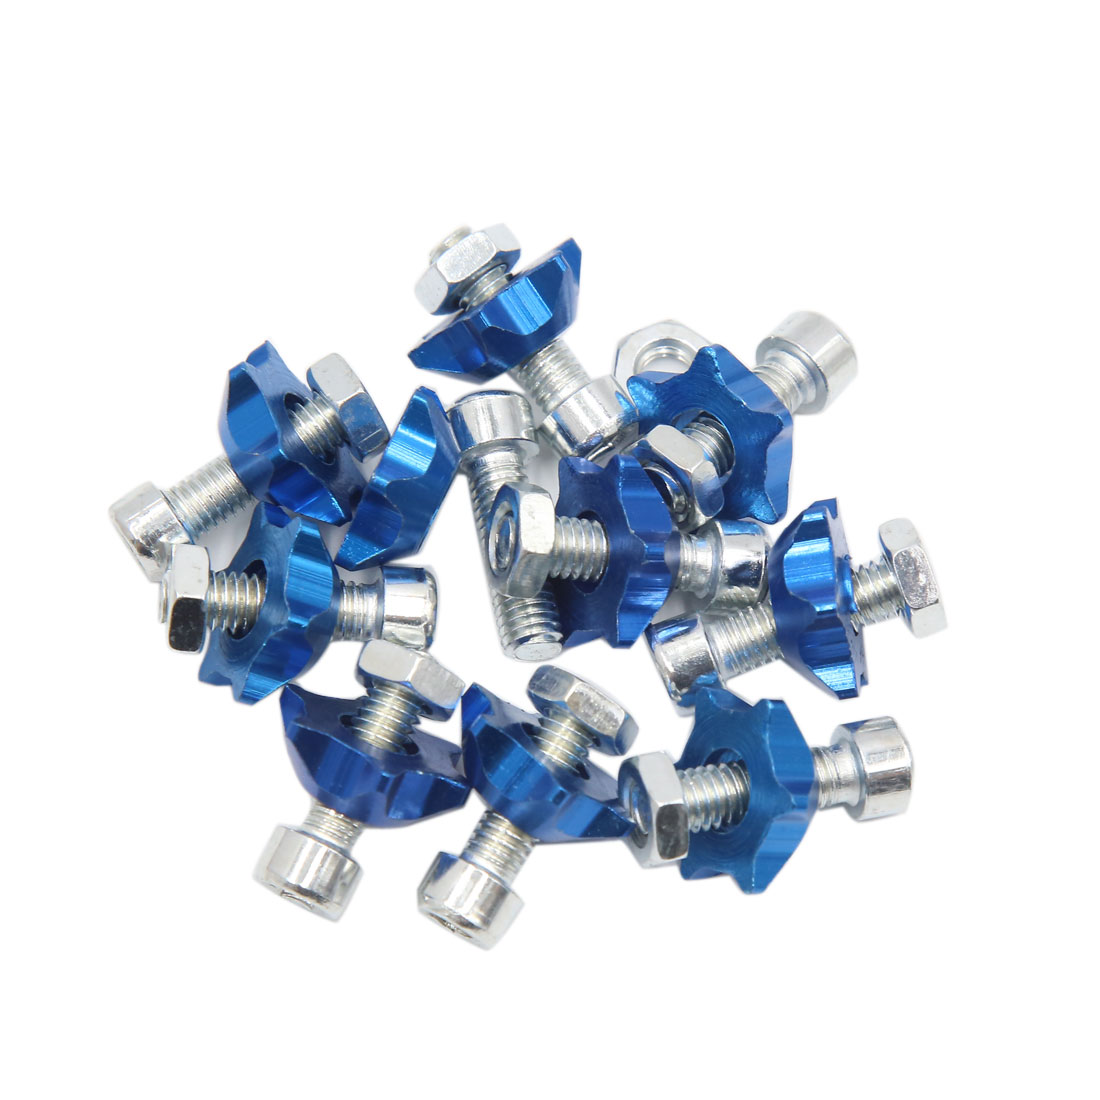 10pcs Blue 6mm Thread Diameter Motorcycle License Plate Frame Screws Bolts Caps